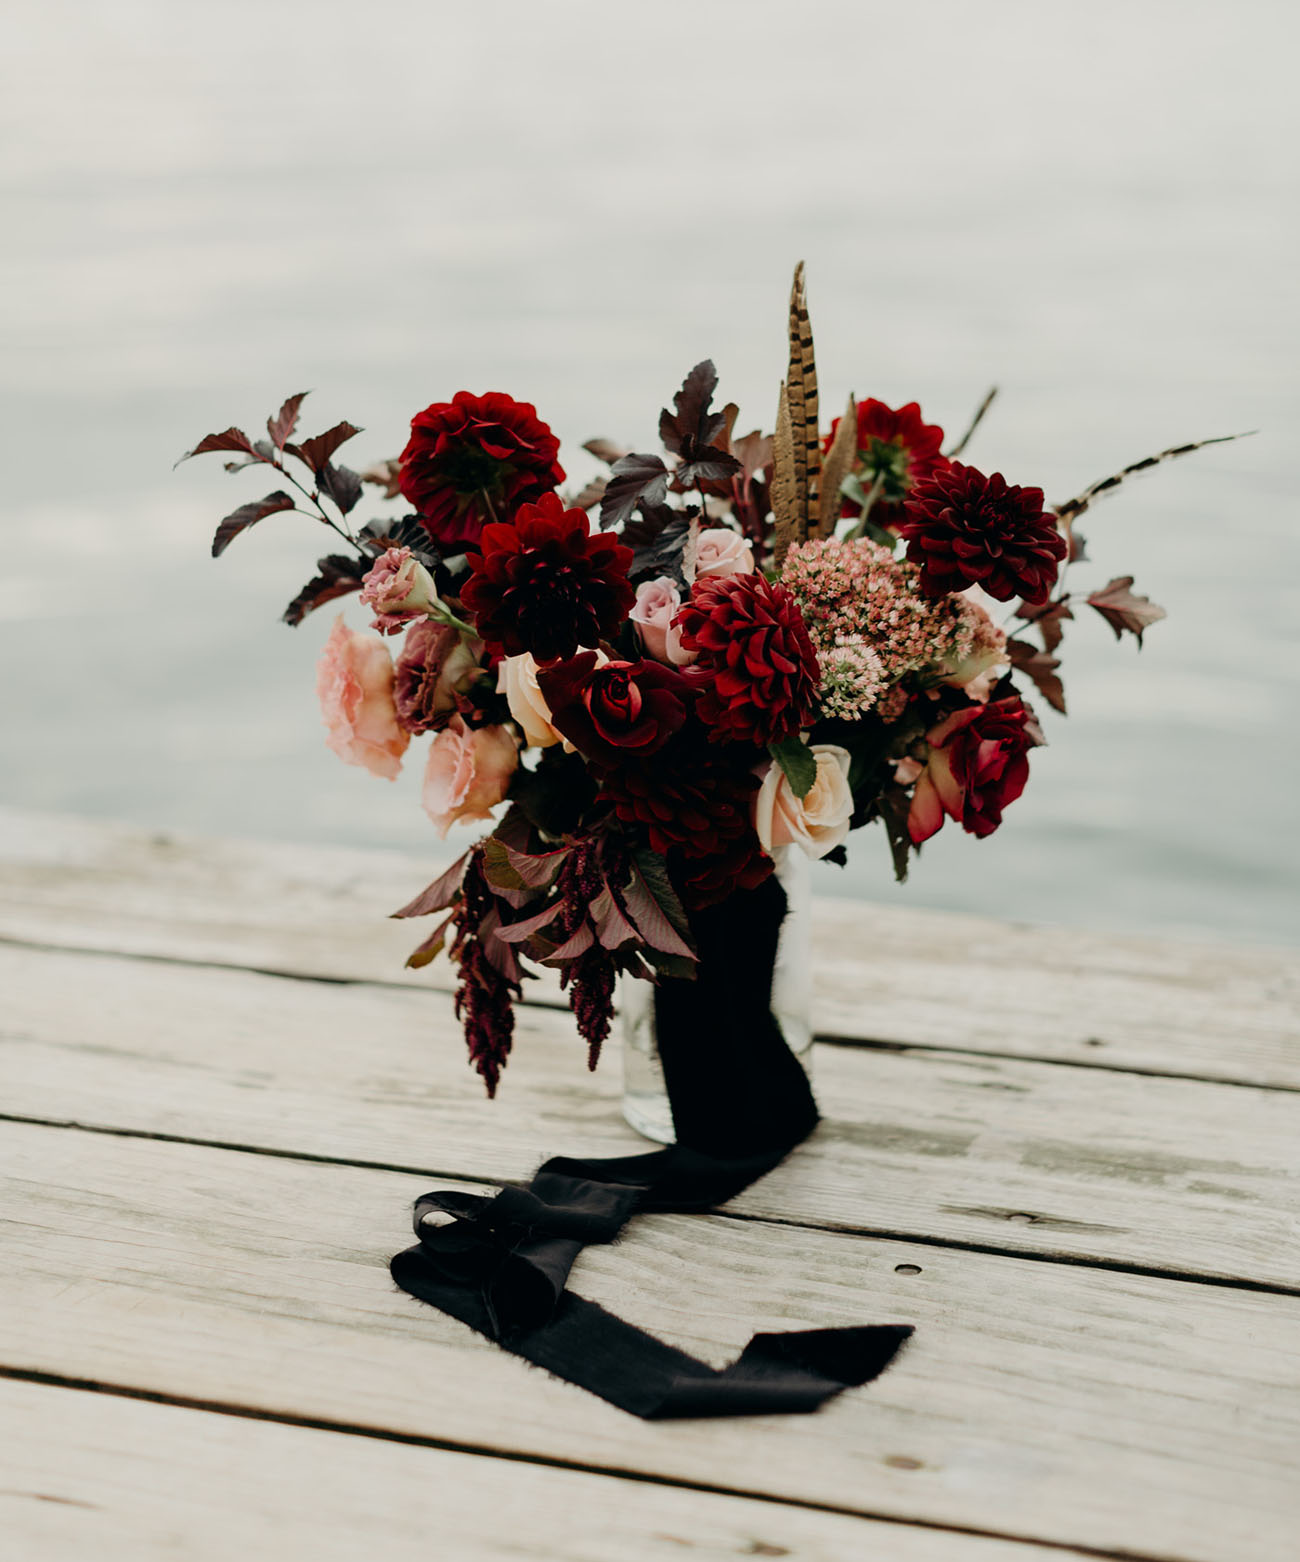 dark an moody wedding bouquet suitable for winter